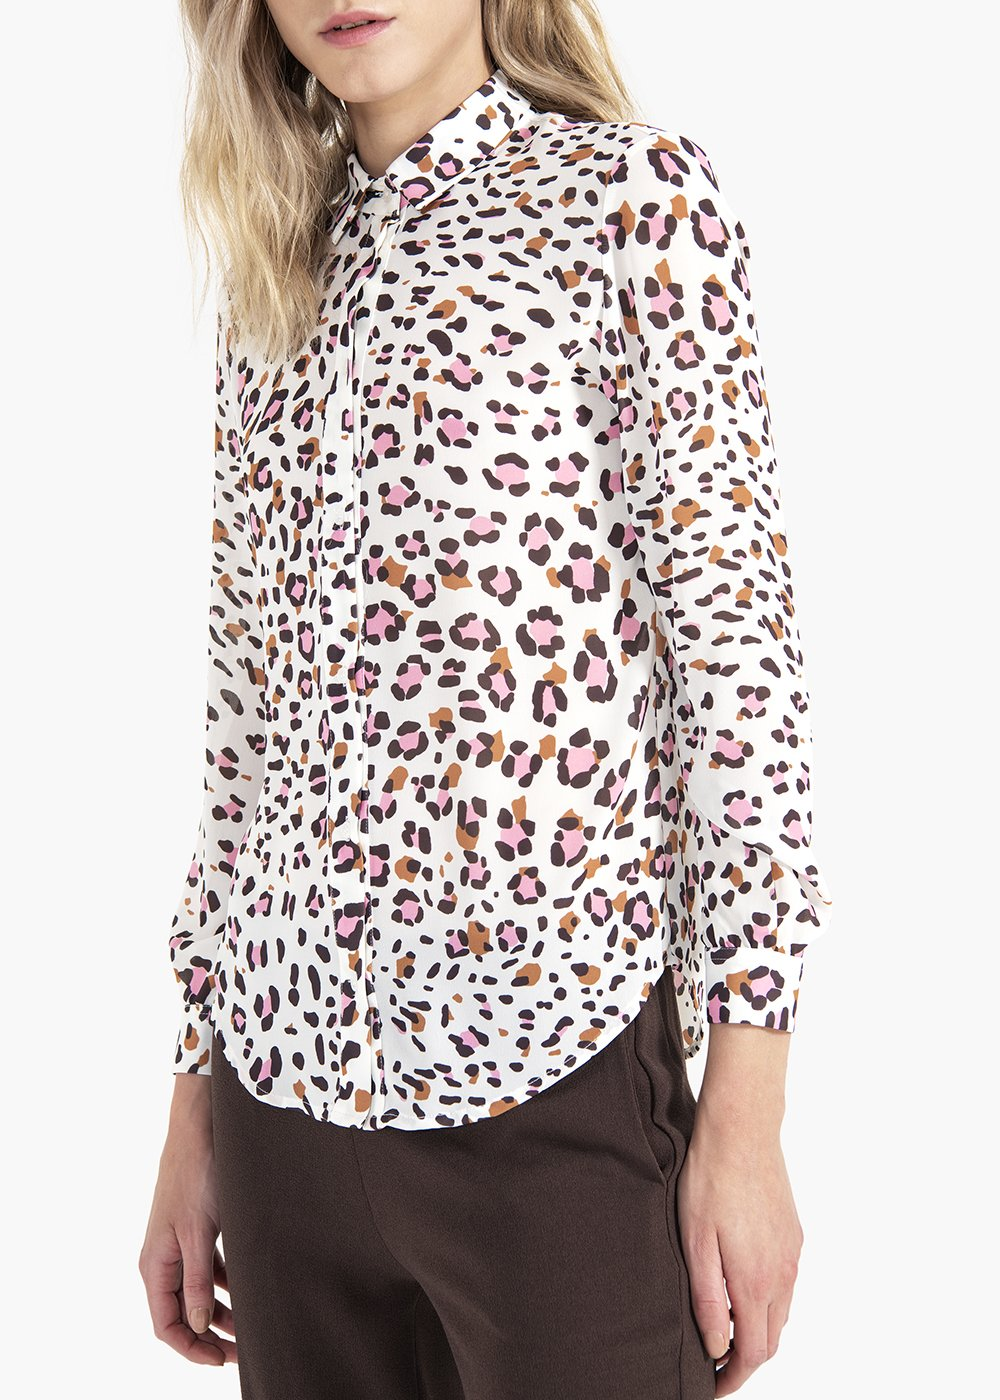 Alessia blouse with collar and spotted print - White / Candy Animalier - Woman